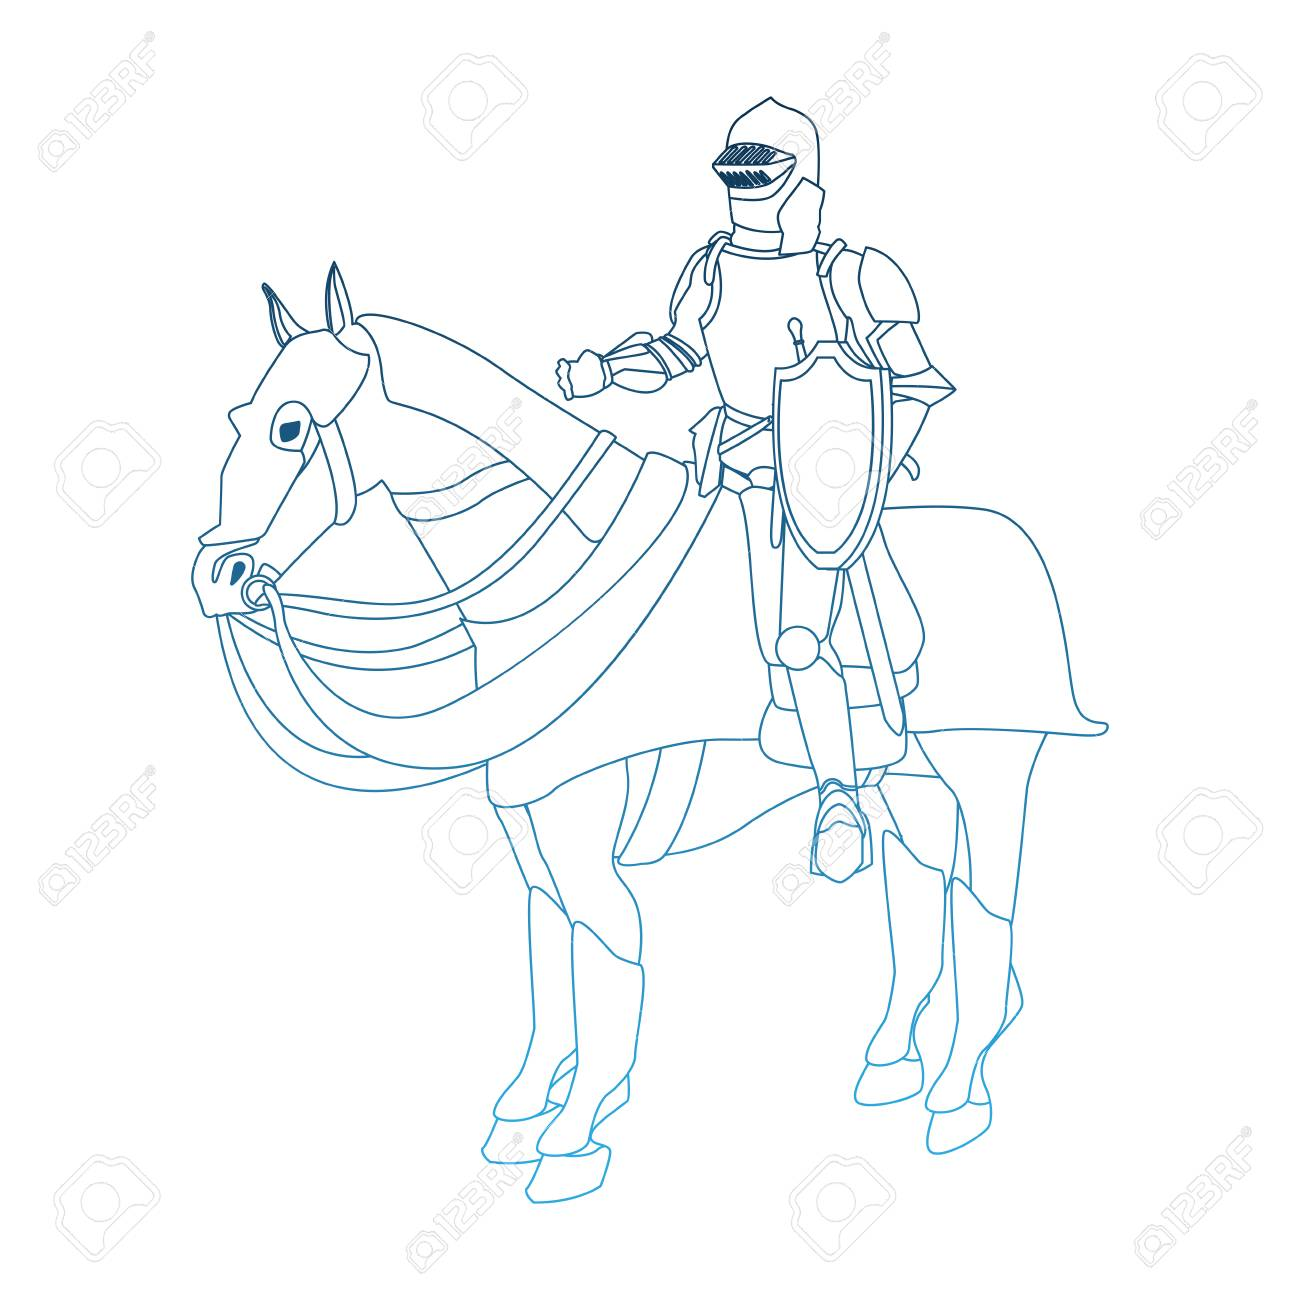 Medieval Warrior On Horse Vector Illustration Graphic Design Royalty Free Cliparts Vectors And Stock Illustration Image 97050539